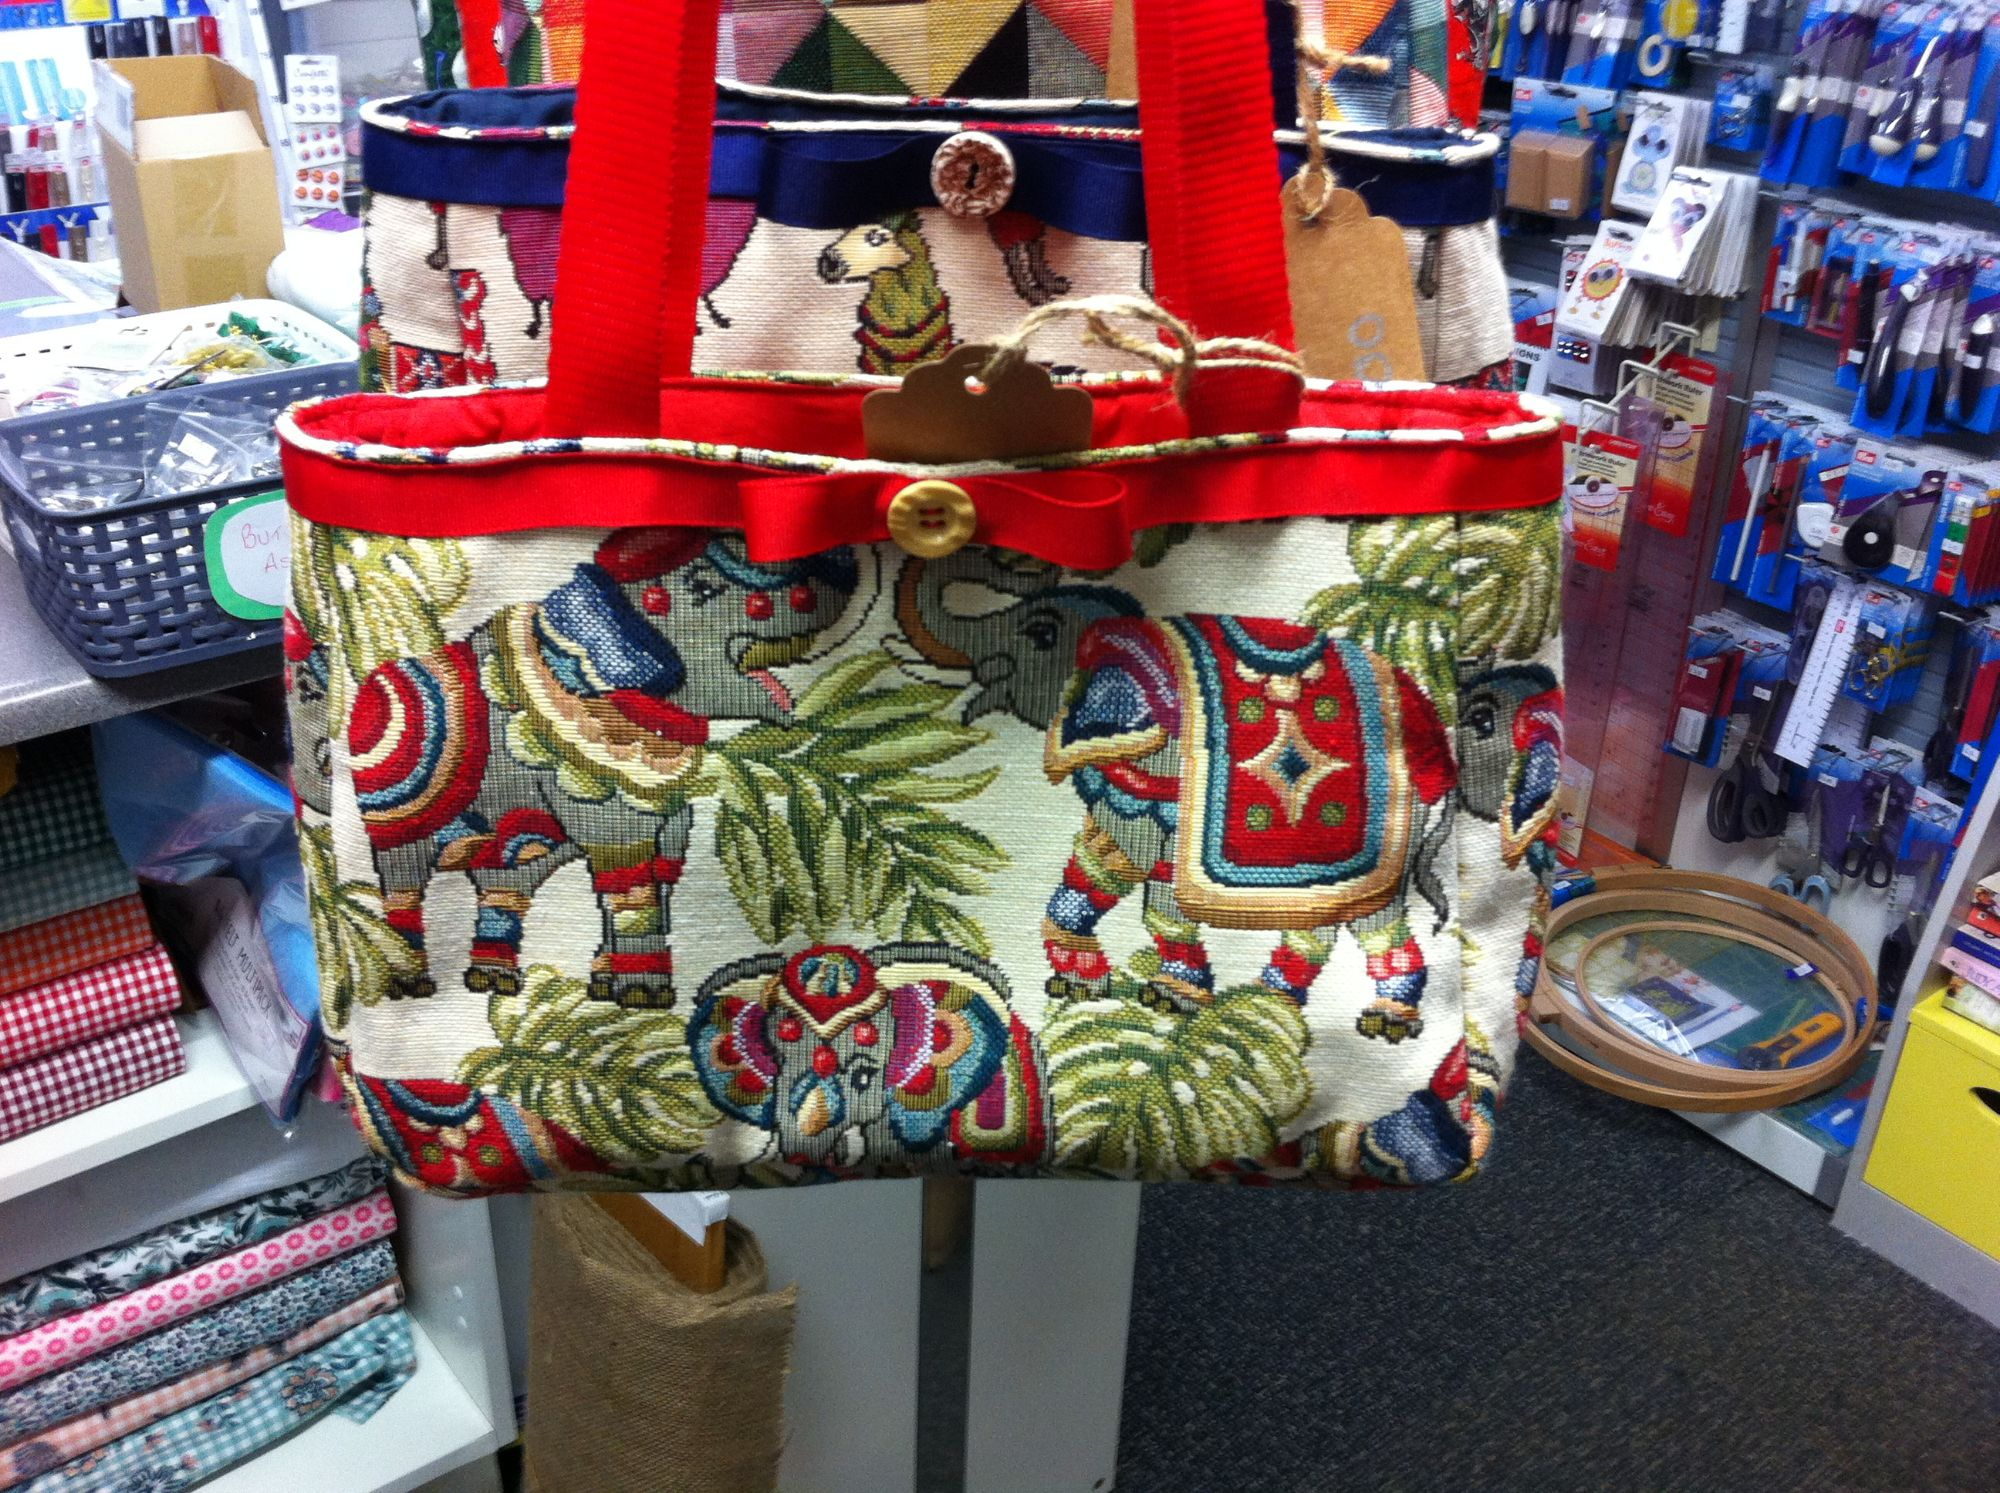 Debby's Patch elephant bag